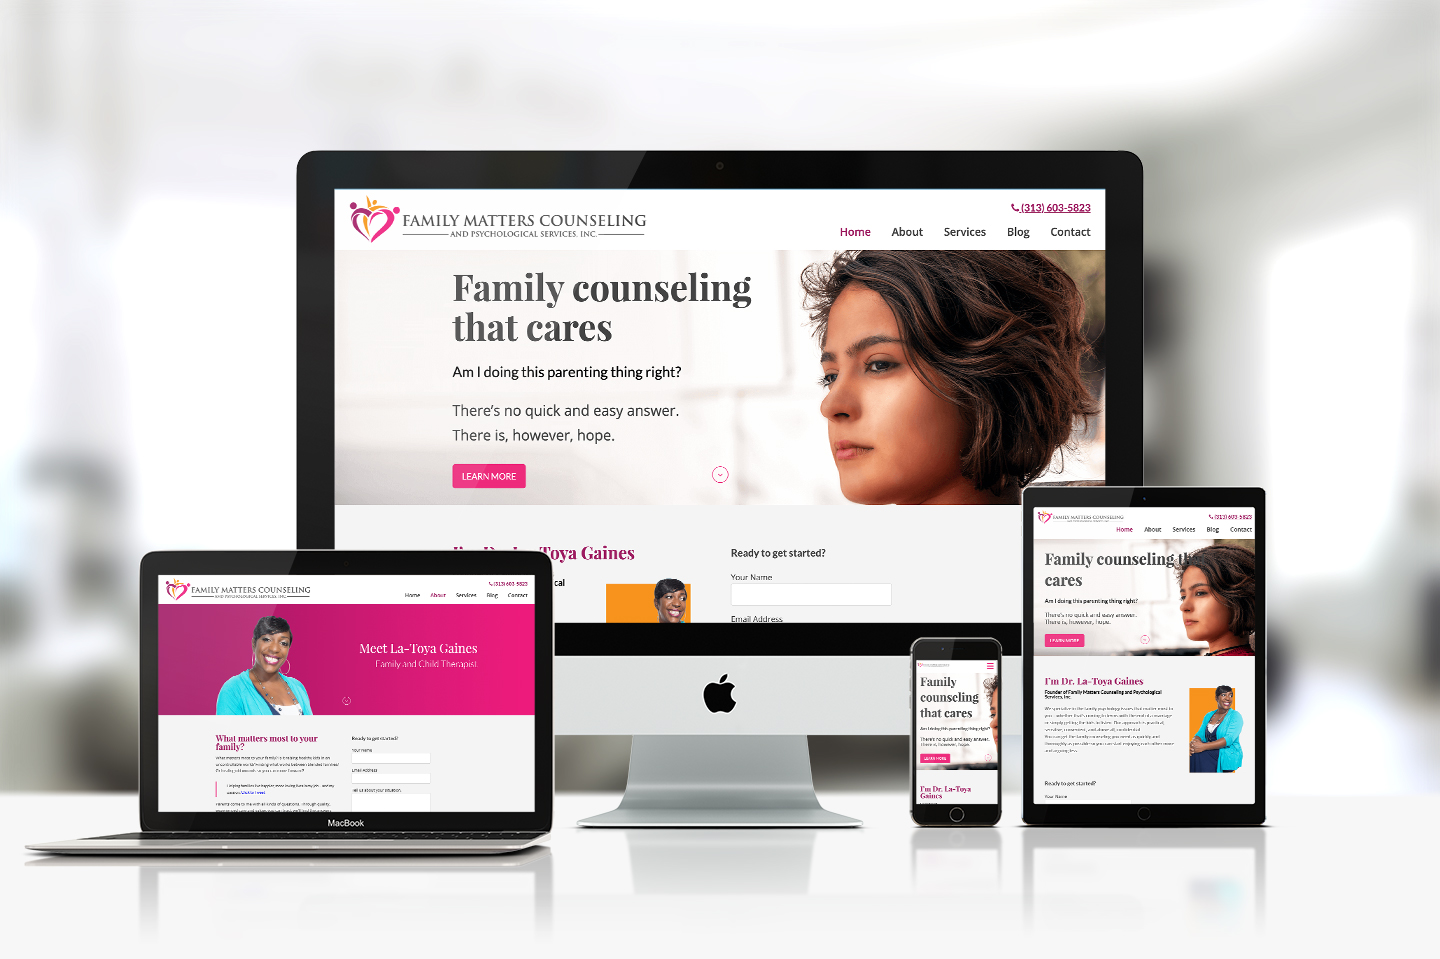 Family Matters Counseling - Brand and Web Design